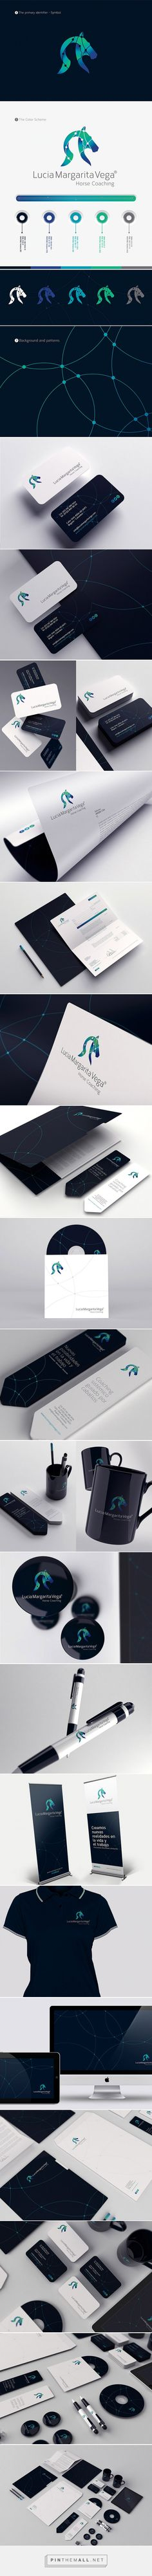 LMV - Logo and Identity by David Espinosa IDS